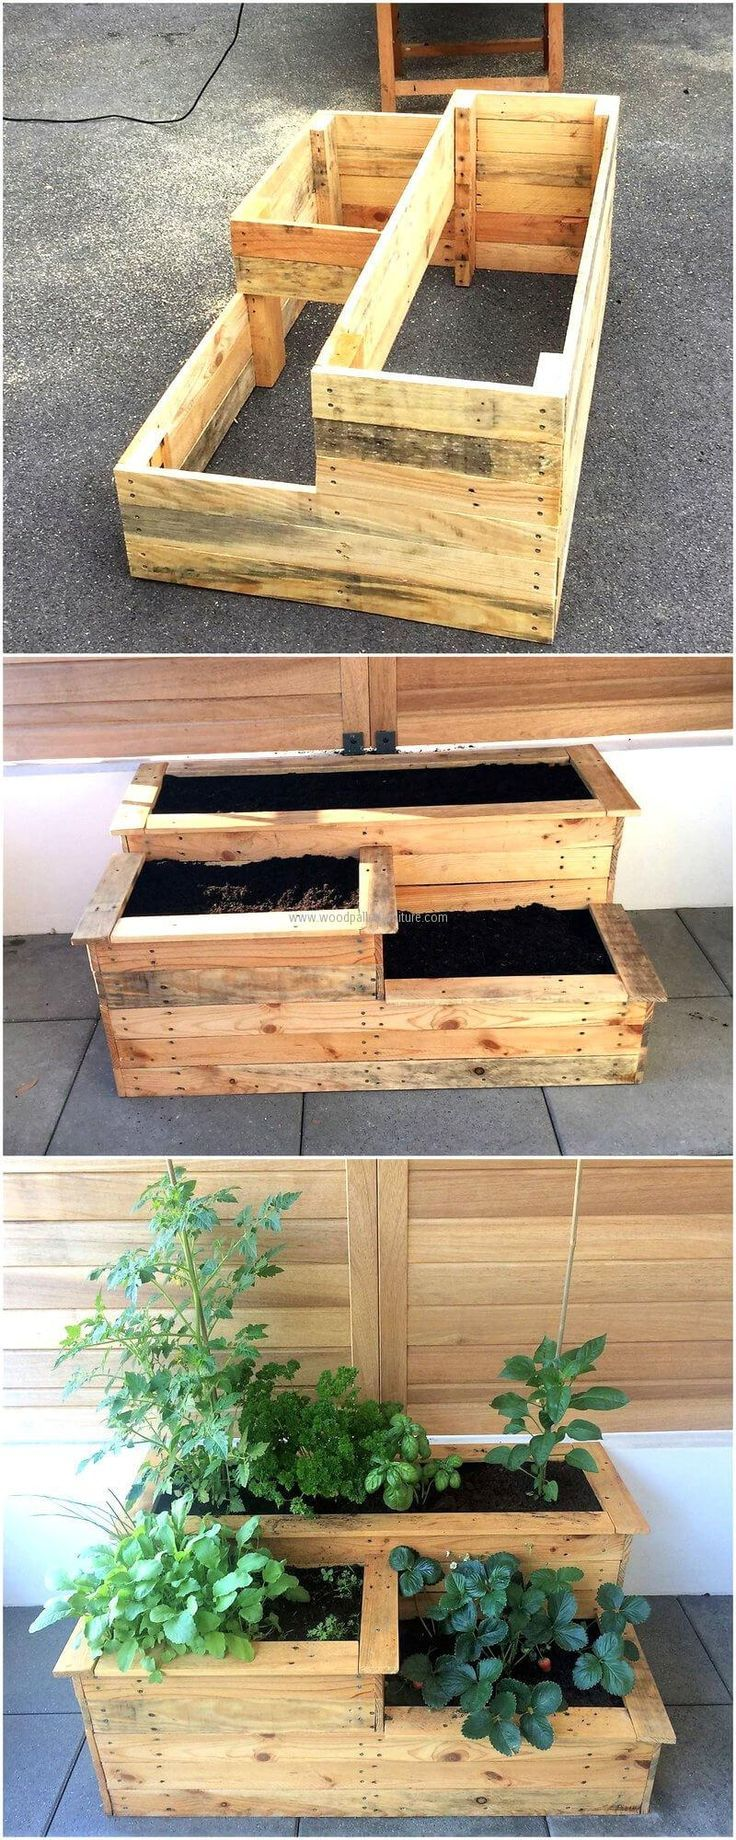 Diy Pallet Organizer 41 - 45+ DIY Project Garage Storage And Organization Use A Pallet